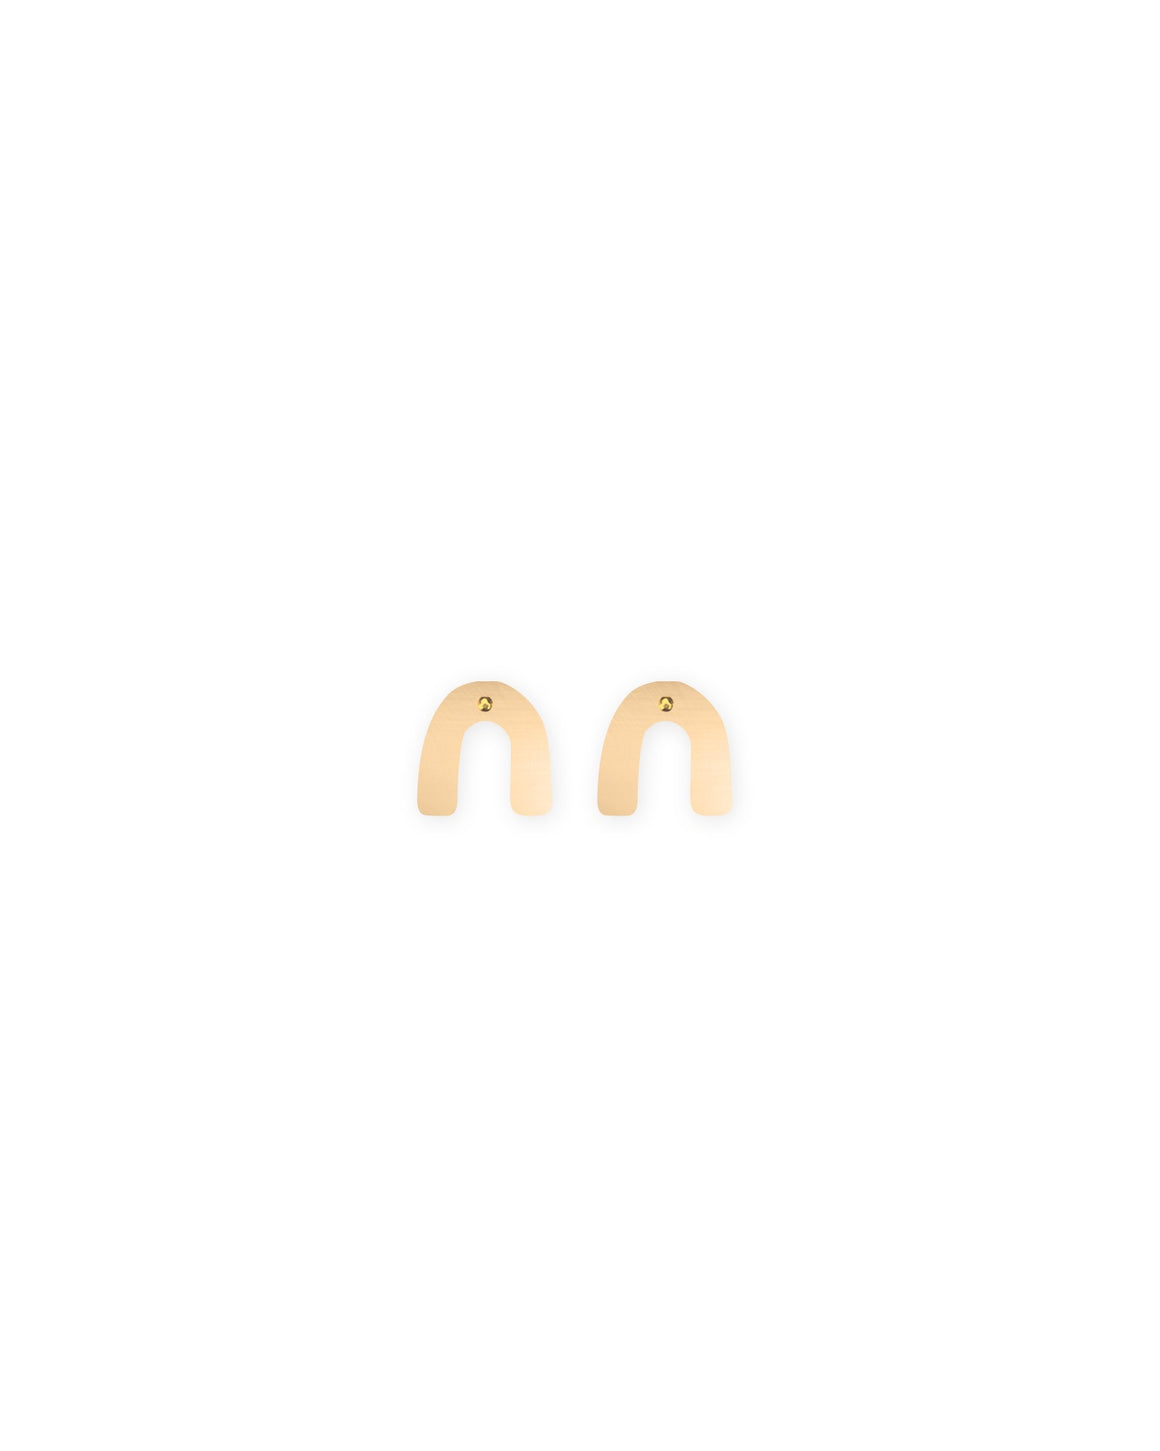 Mirrored Gold Signature Small Arch Stud Earrings